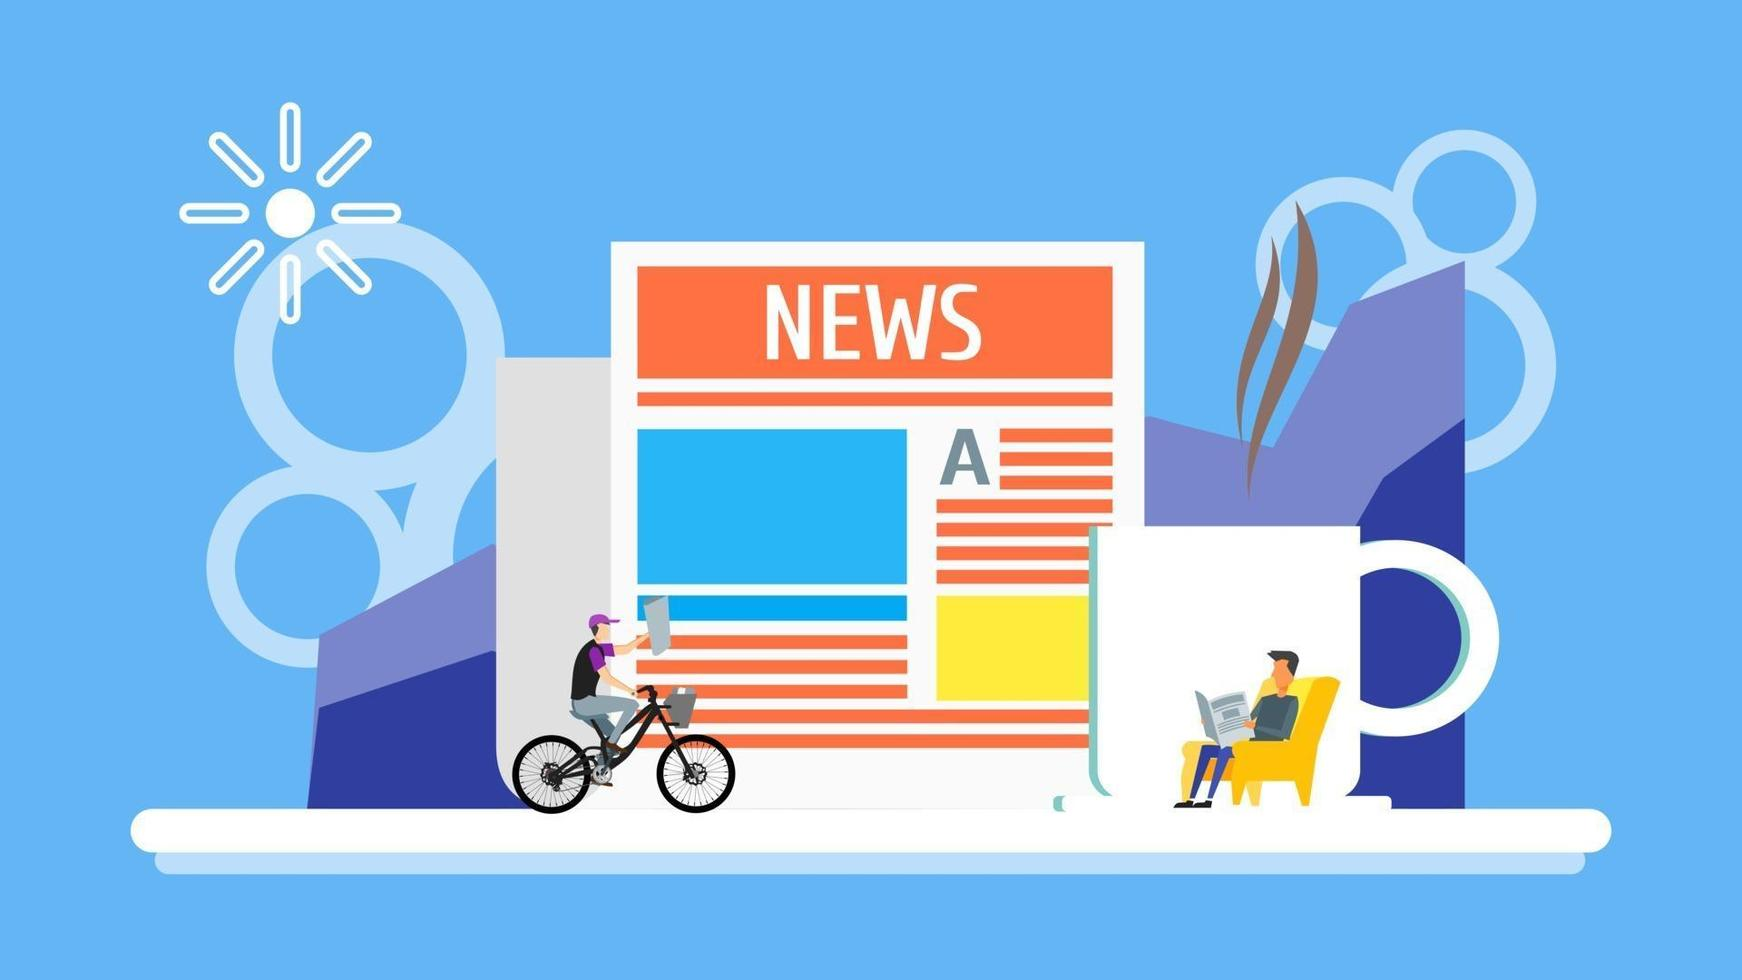 Business man reading newspaper with cup of coffee background. man rides on bicycle with news headline concept. Flay Tiny People Character. landing page design template Vector Illustration.